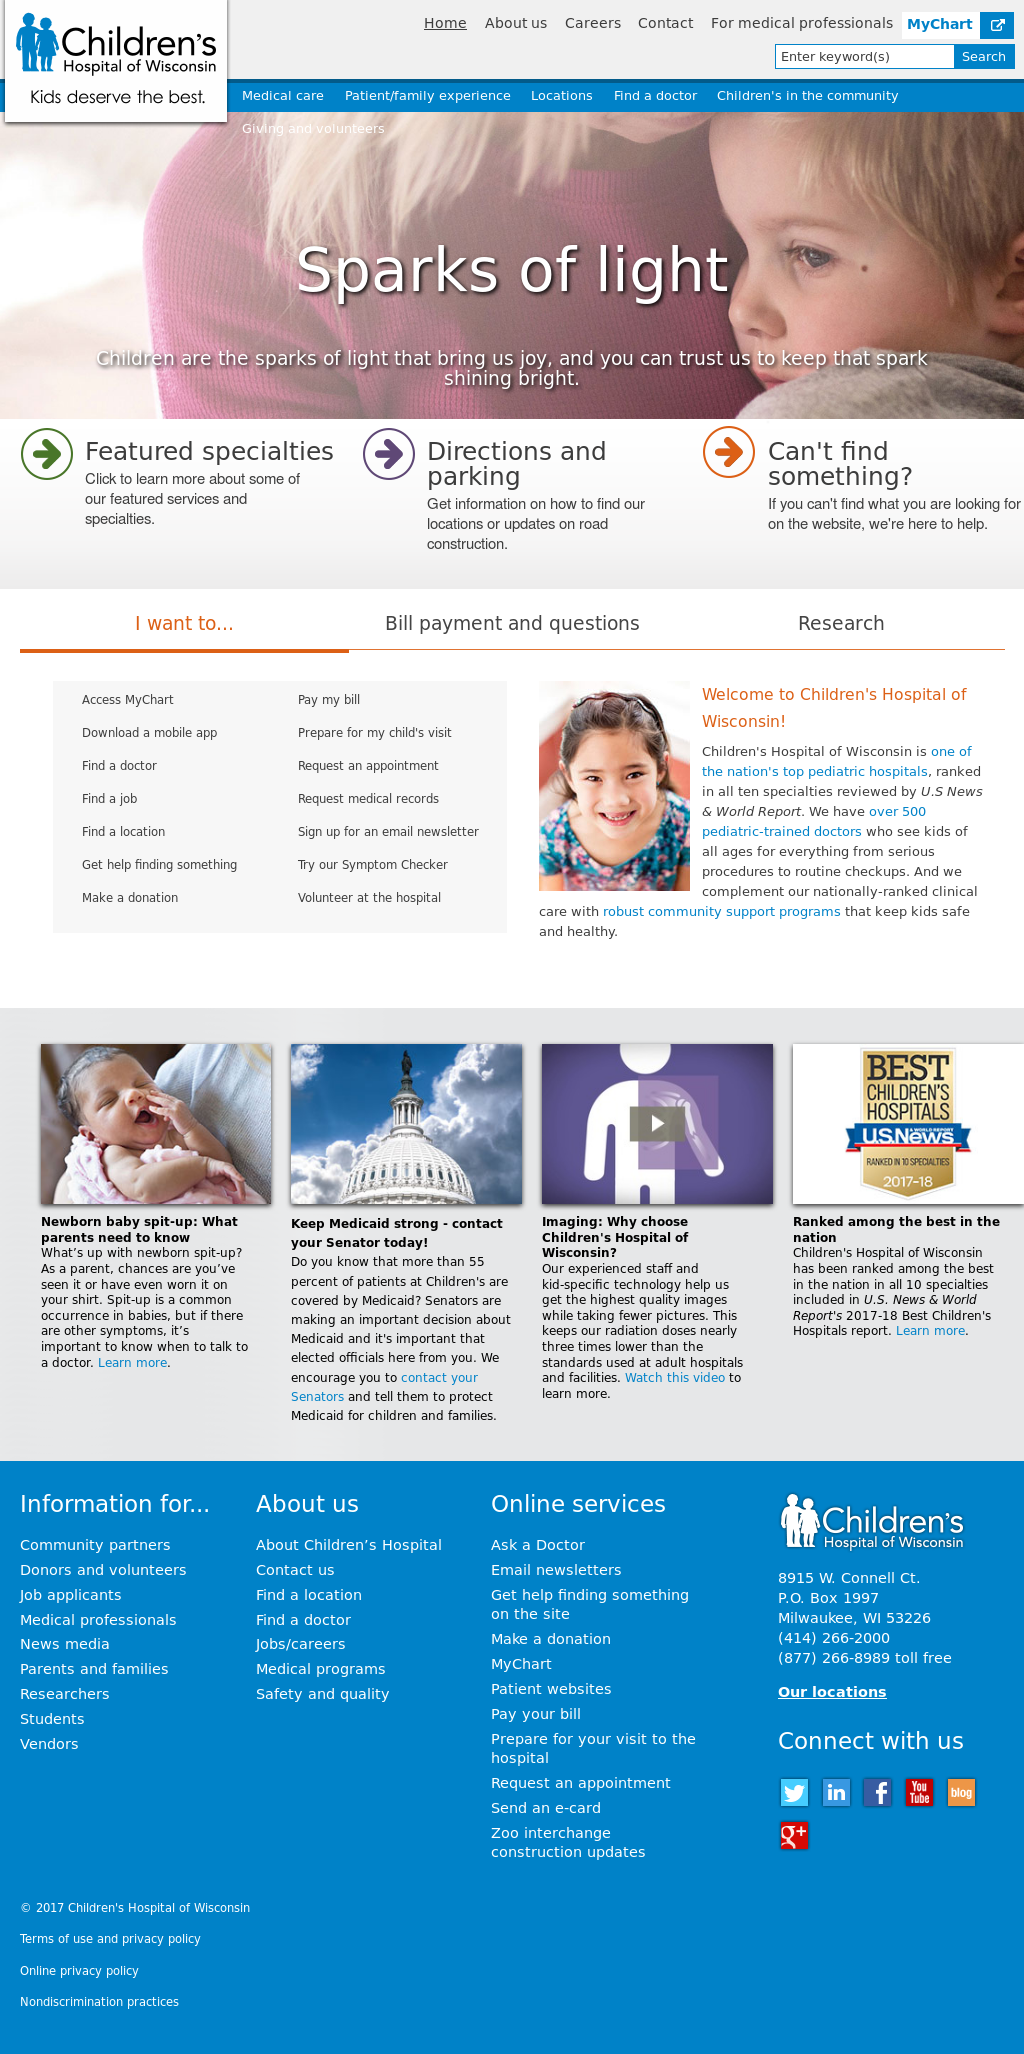 Children's Hospital of Wisconsin Competitors, Revenue and